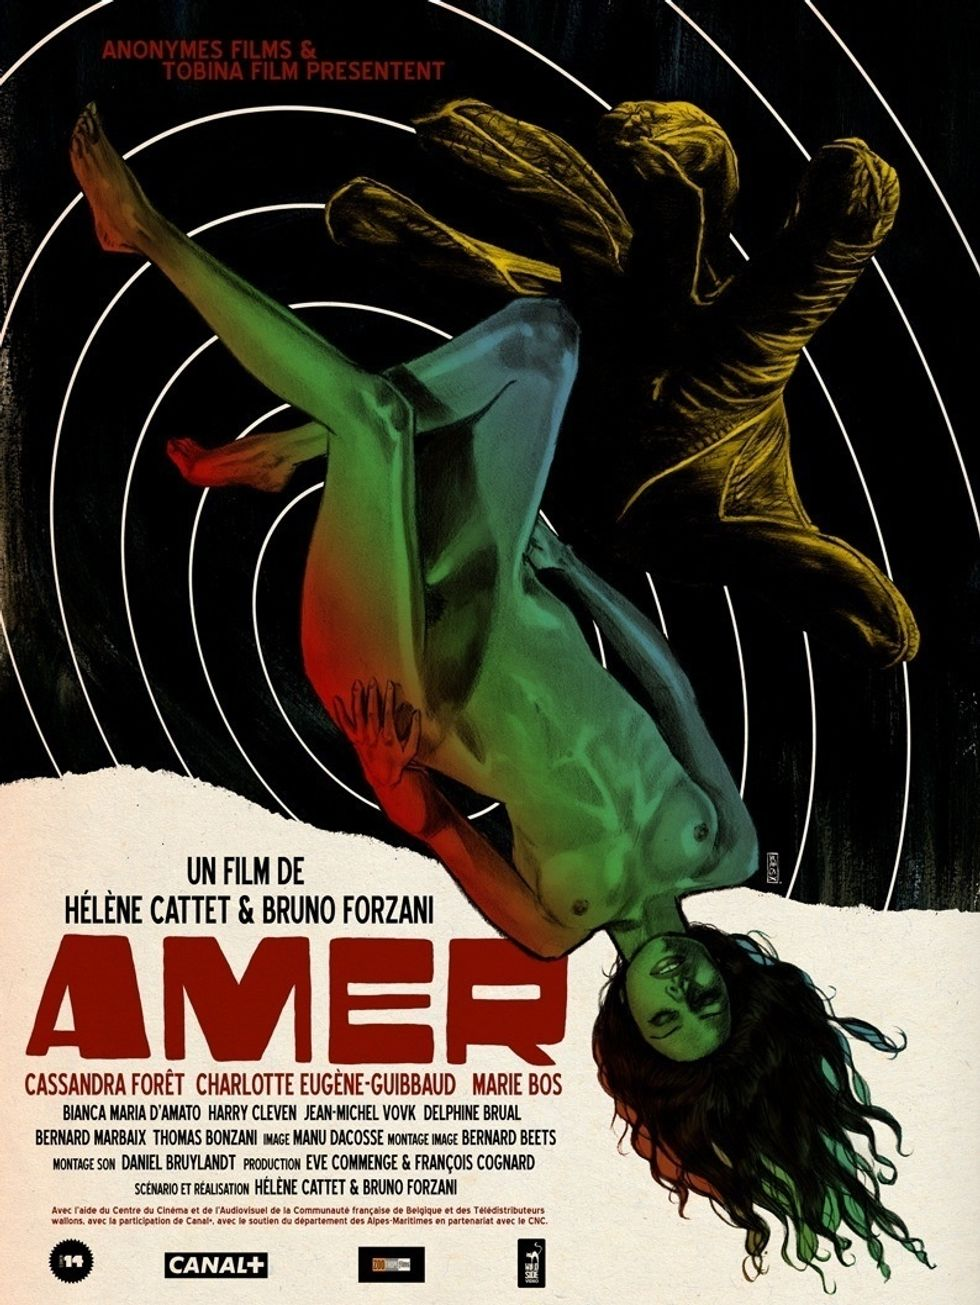 Amer, Homage To Italian Thrillers, Opens Friday